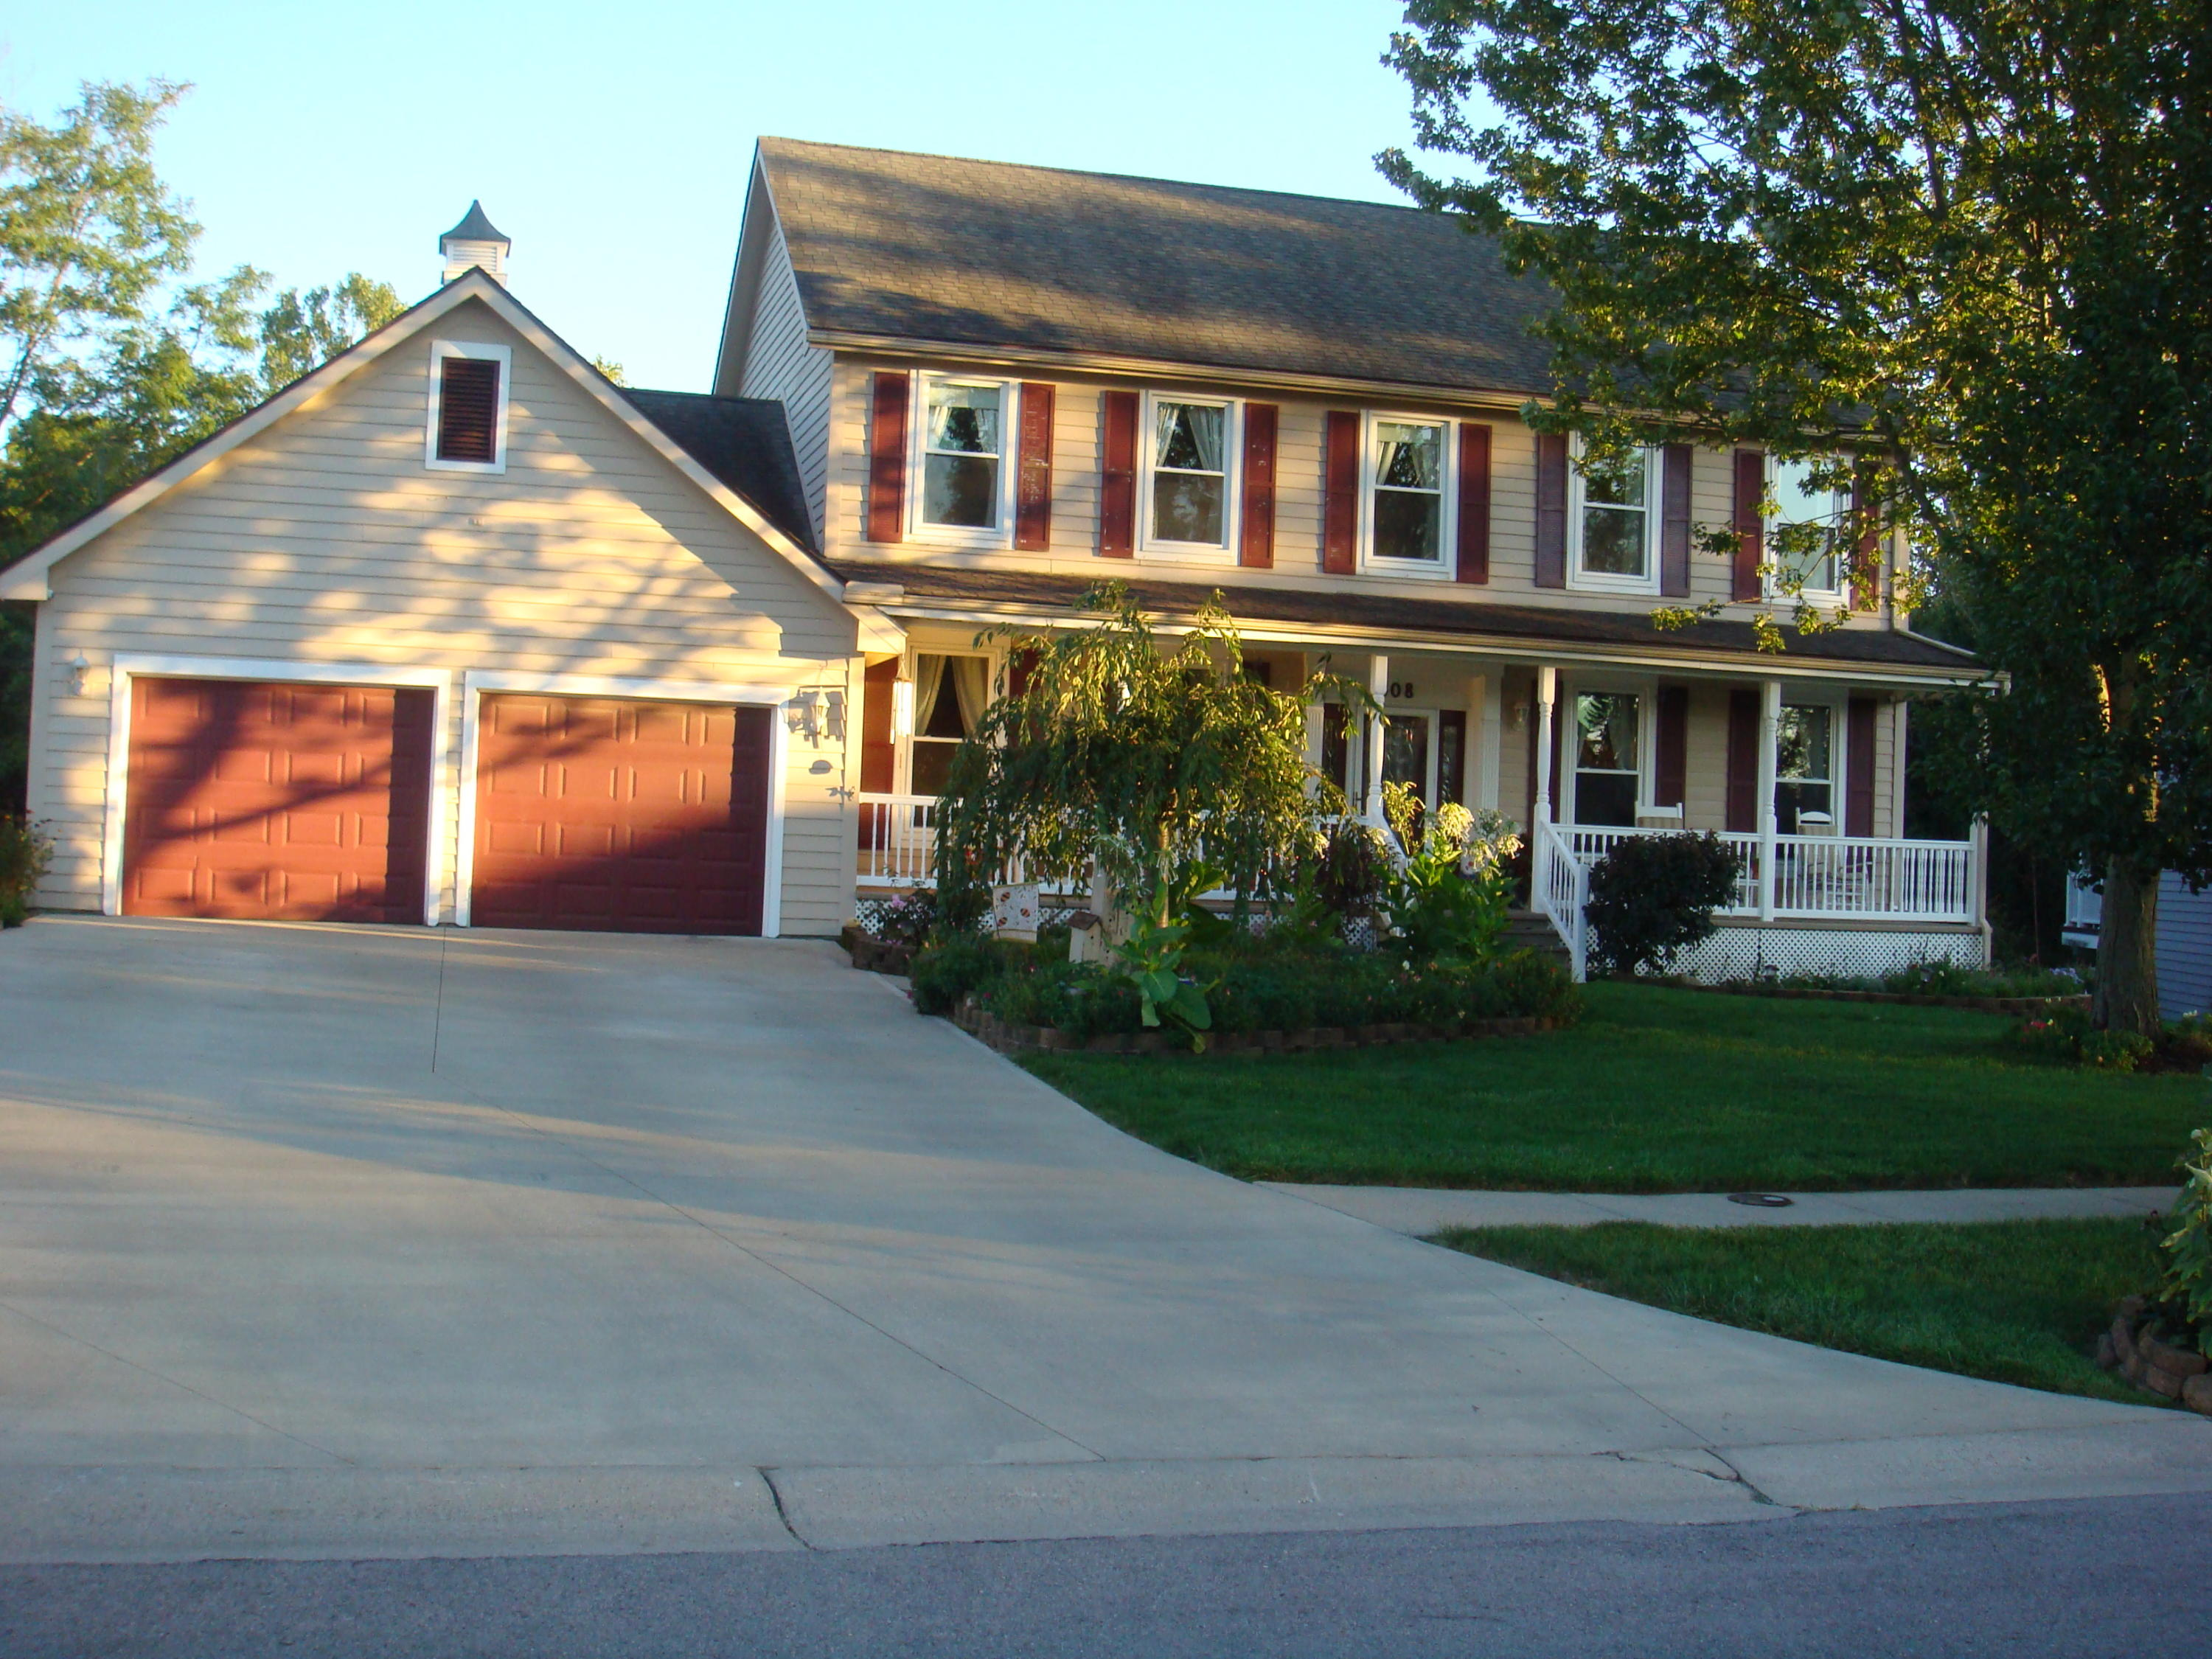 808 Creekview Ct Bellefontaine, OH